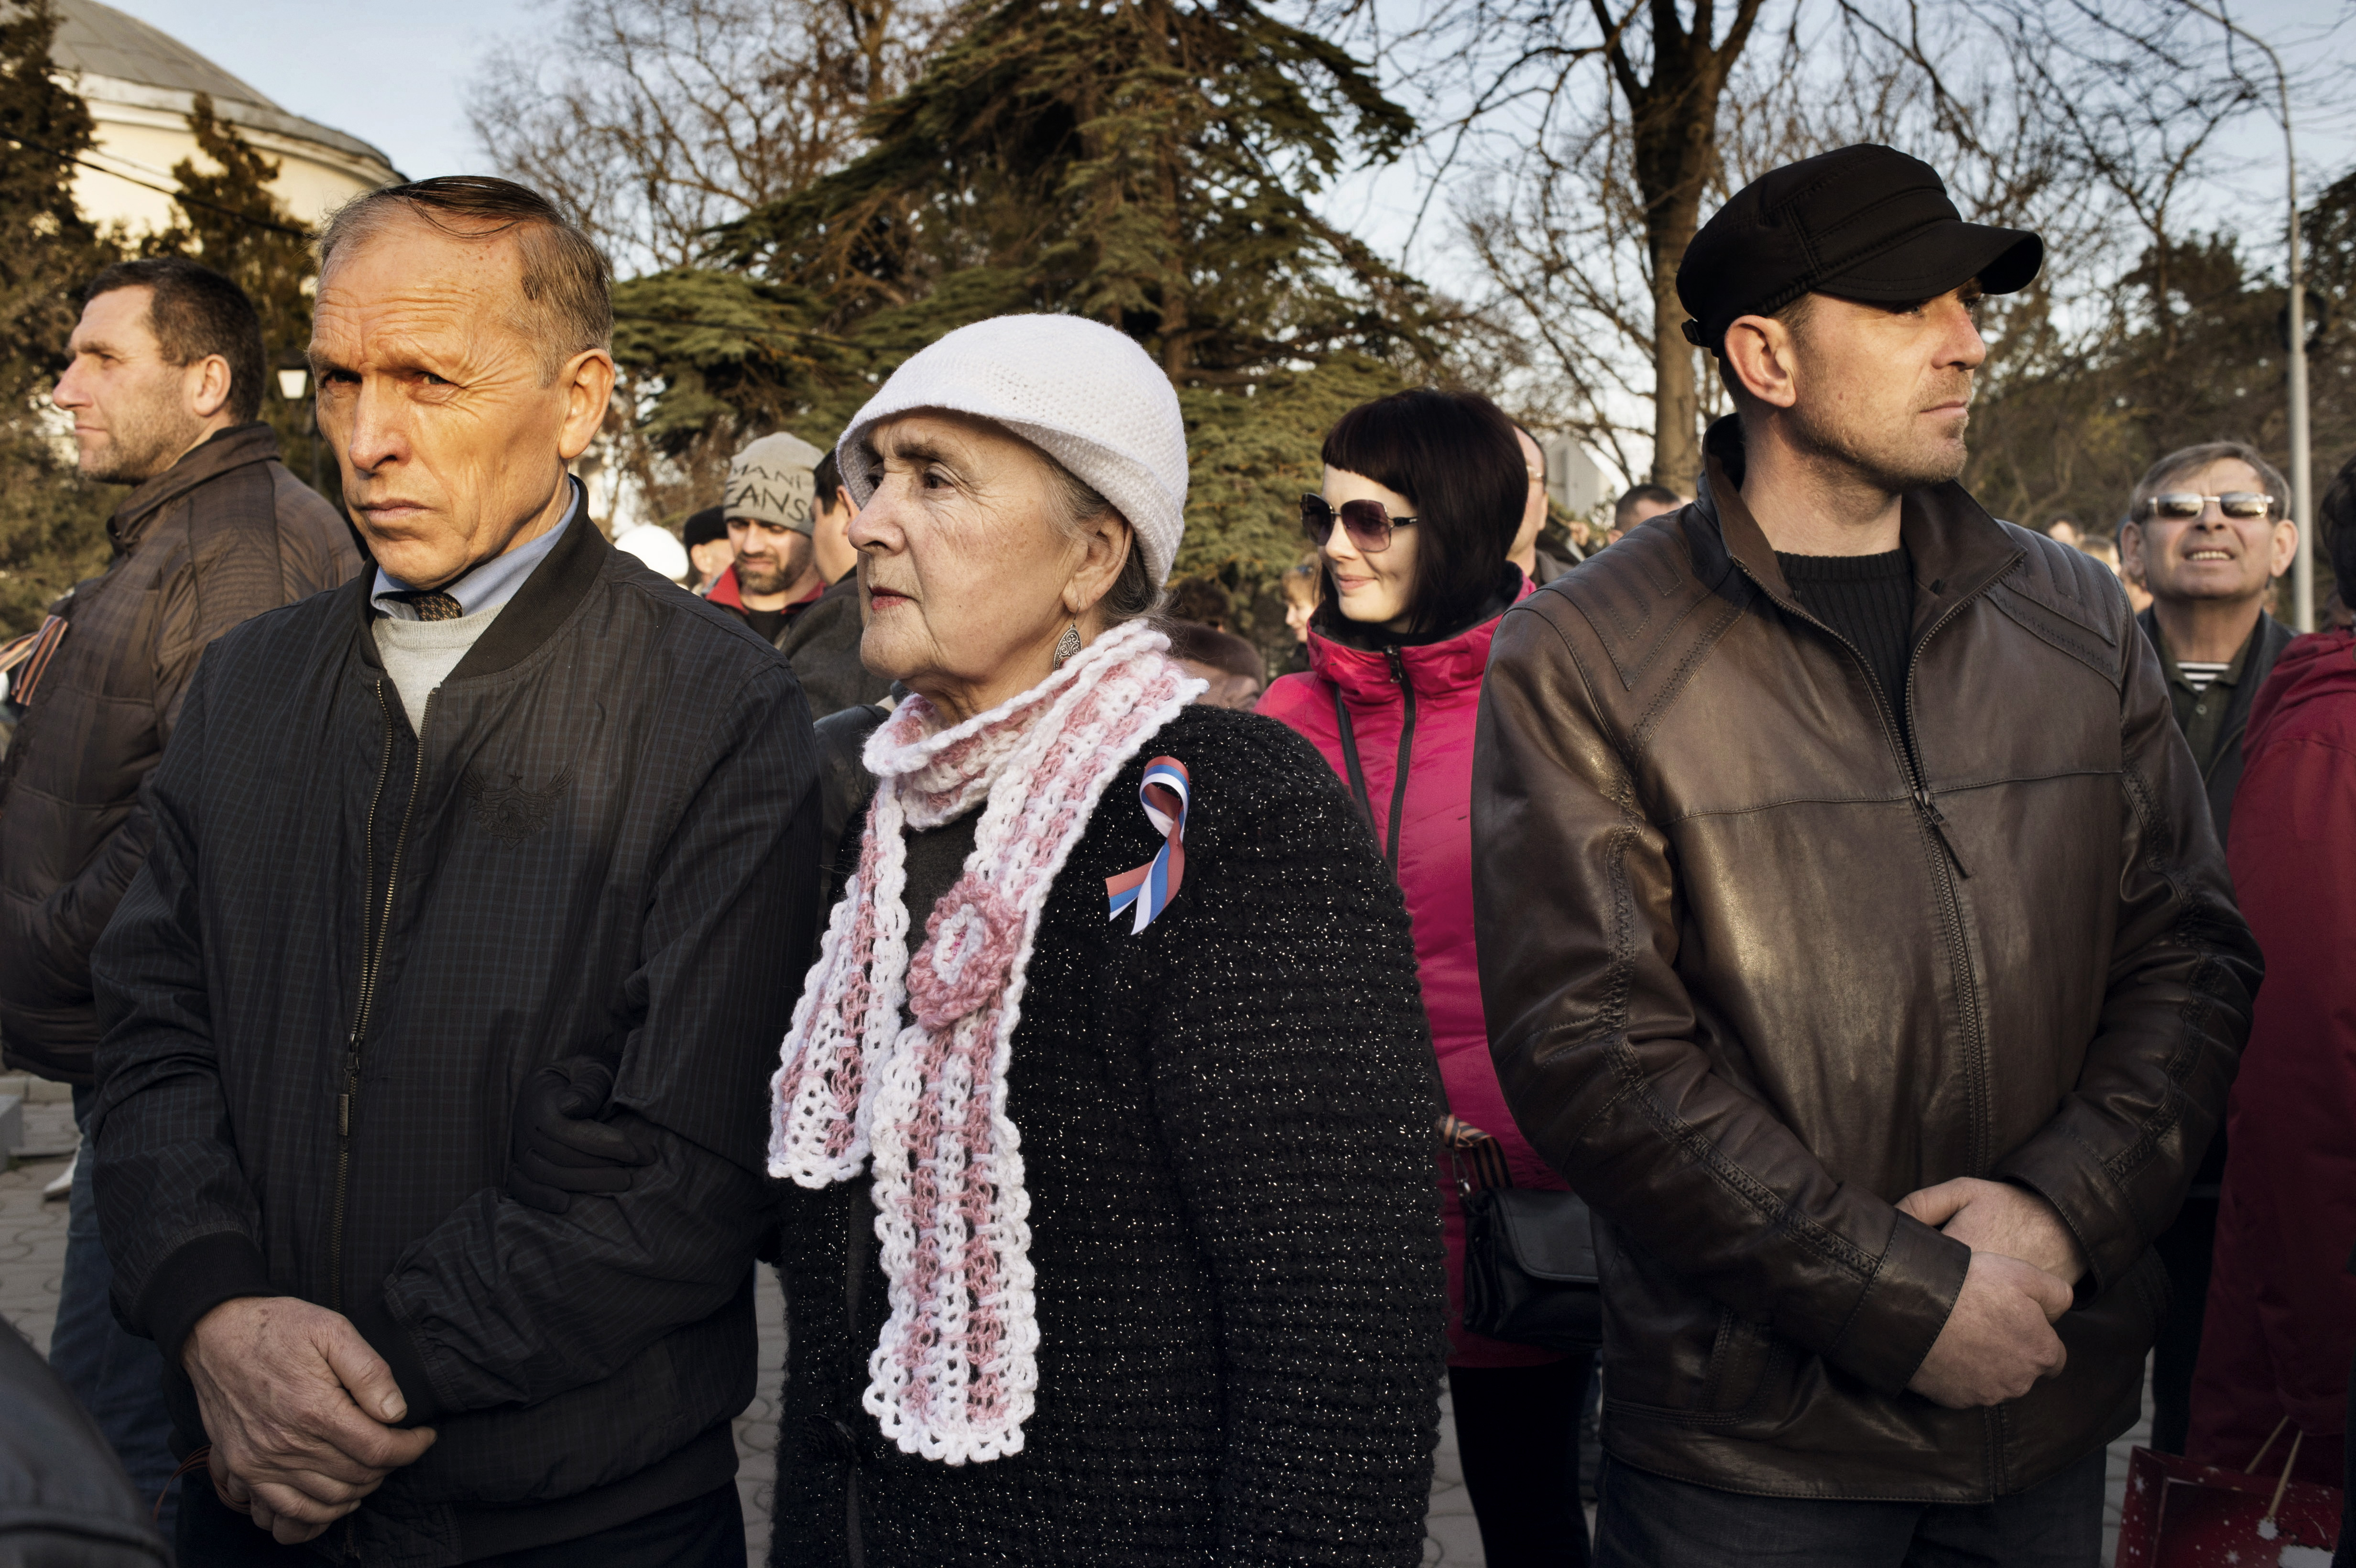 People at a pro-Russian gathering in Yevpatoria, Ukraine, March 5, 2014.